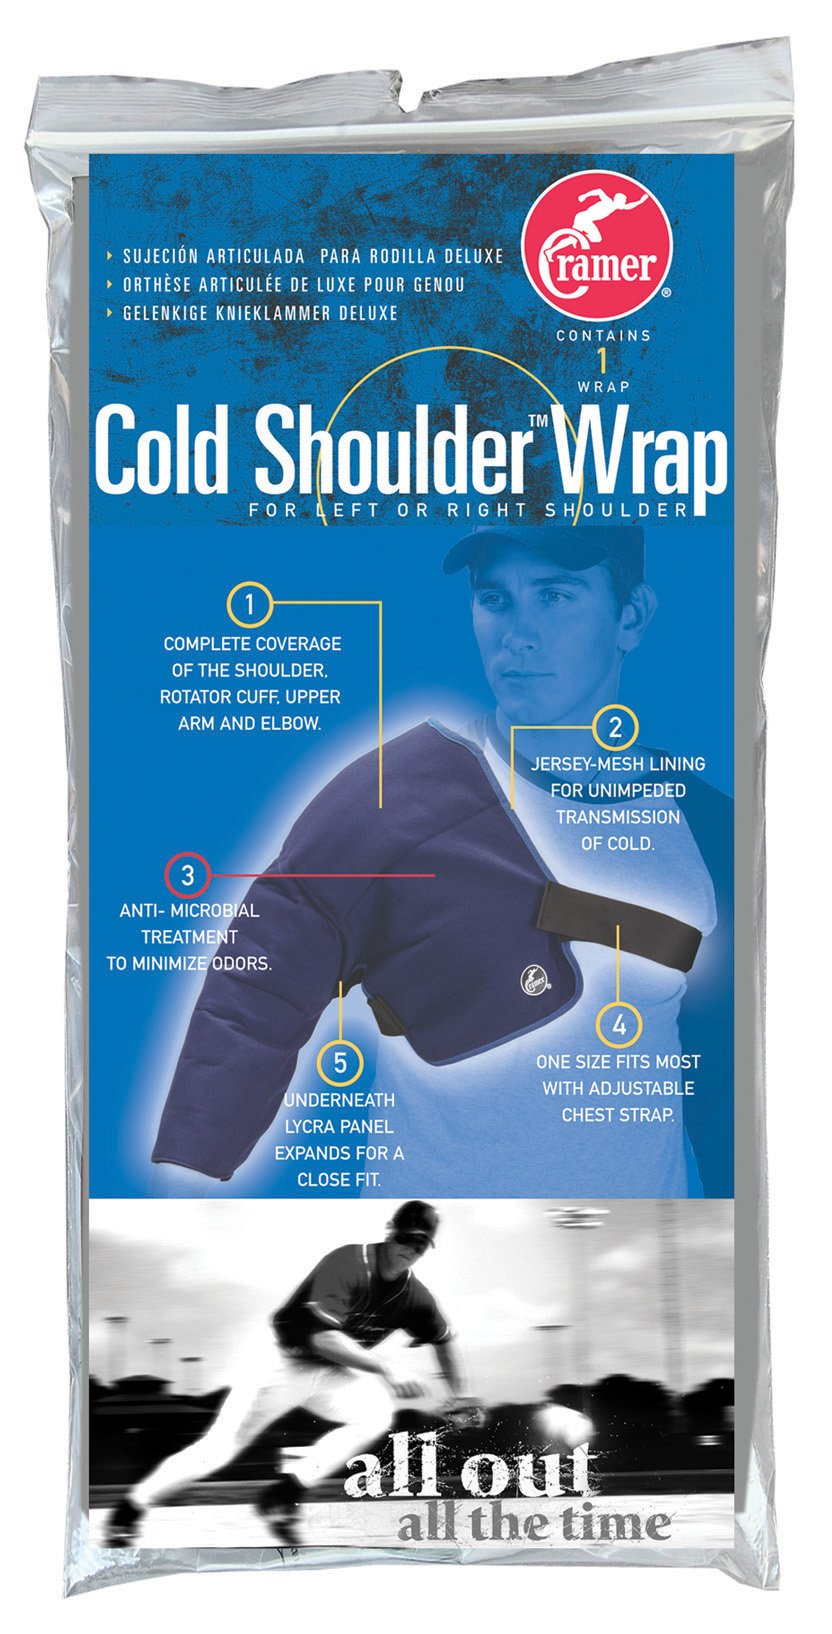 Cramer Cold Shoulder Wrap, Shoulder Ice Pack, Shoulder Ice Wrap for Shoulder and Rotator Cuff Injuries, Physical Therapy, Rehabilitation, Decrease Swelling, Injury Recovery, Baseball Injuries, Reusable